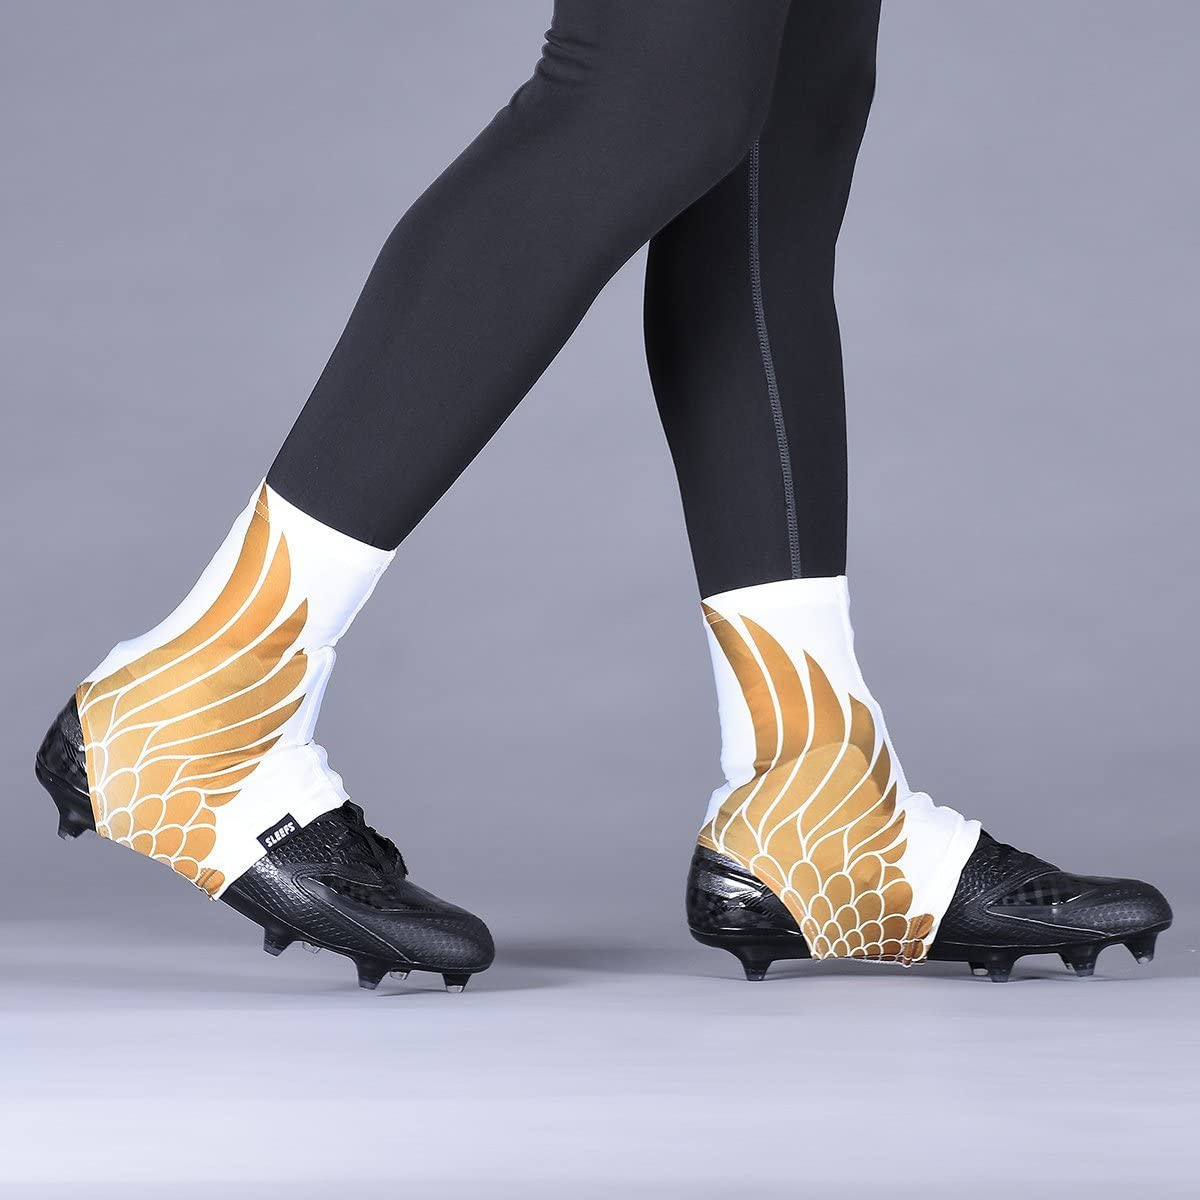 Icarus White Gold Spats/Cleat Covers